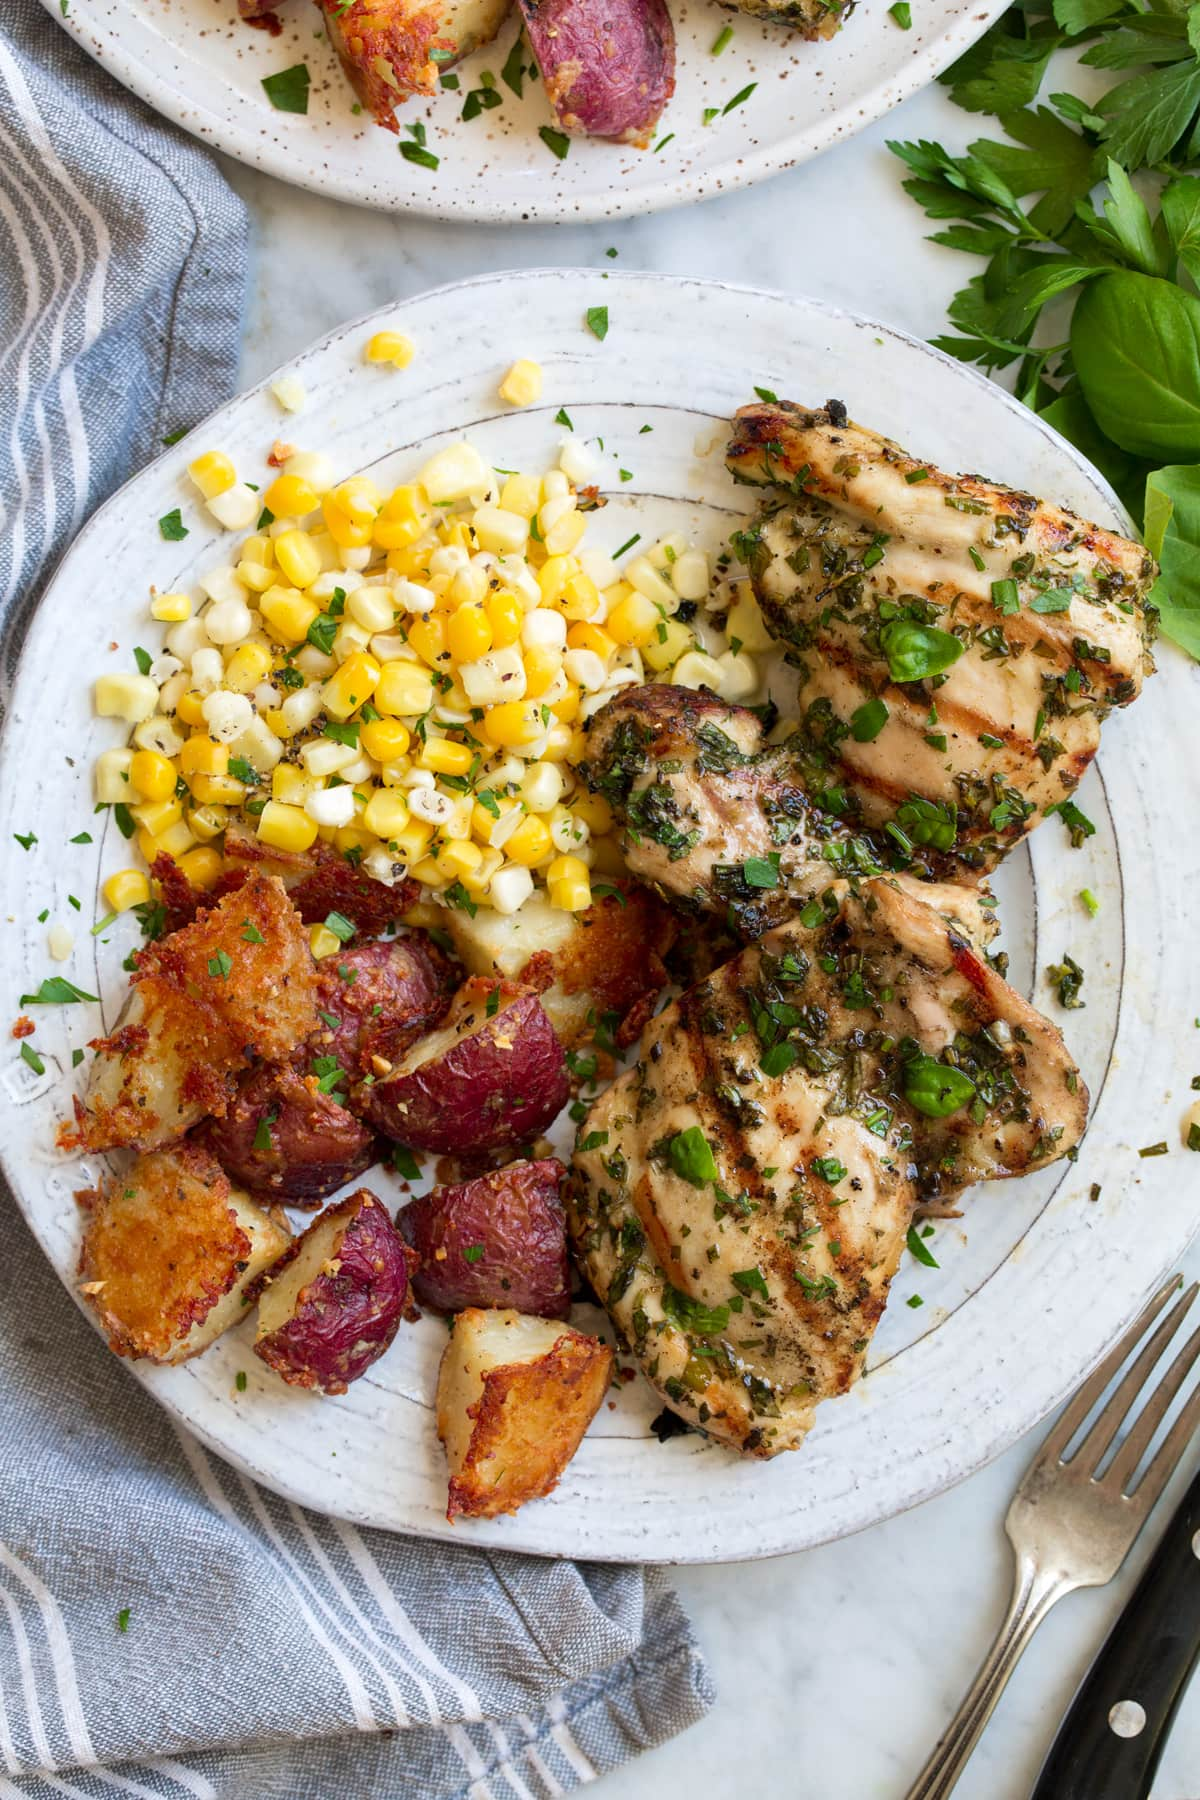 Overhead image of garlic and herb marinated grilled chicken thighs with corn and roasted red potatoes as sides. Food is resting on a white plate set over a marble surface.